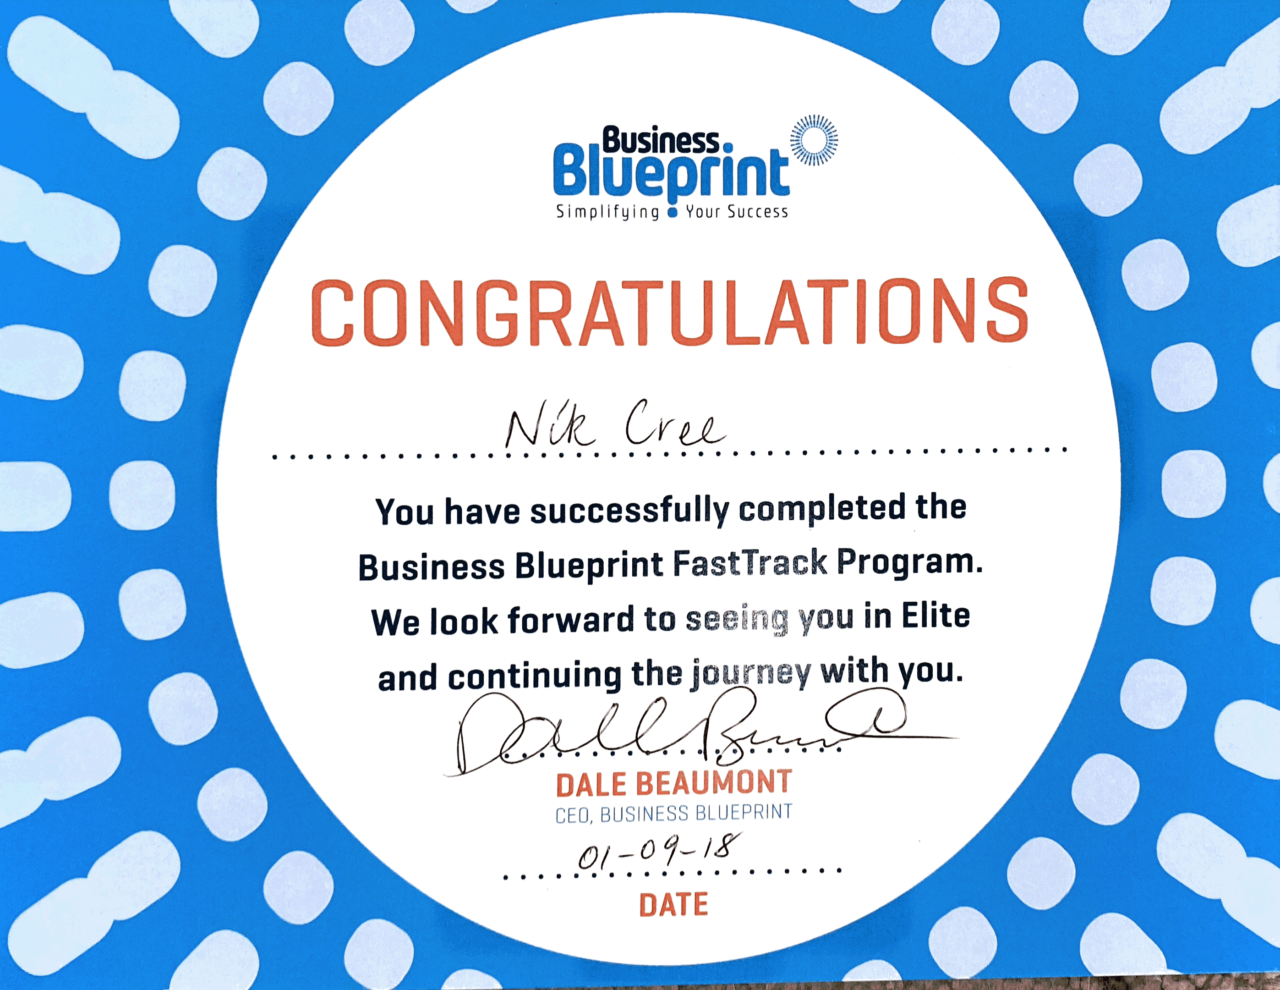 Business Blueprint Completion Certificate 2018 Nik Cree